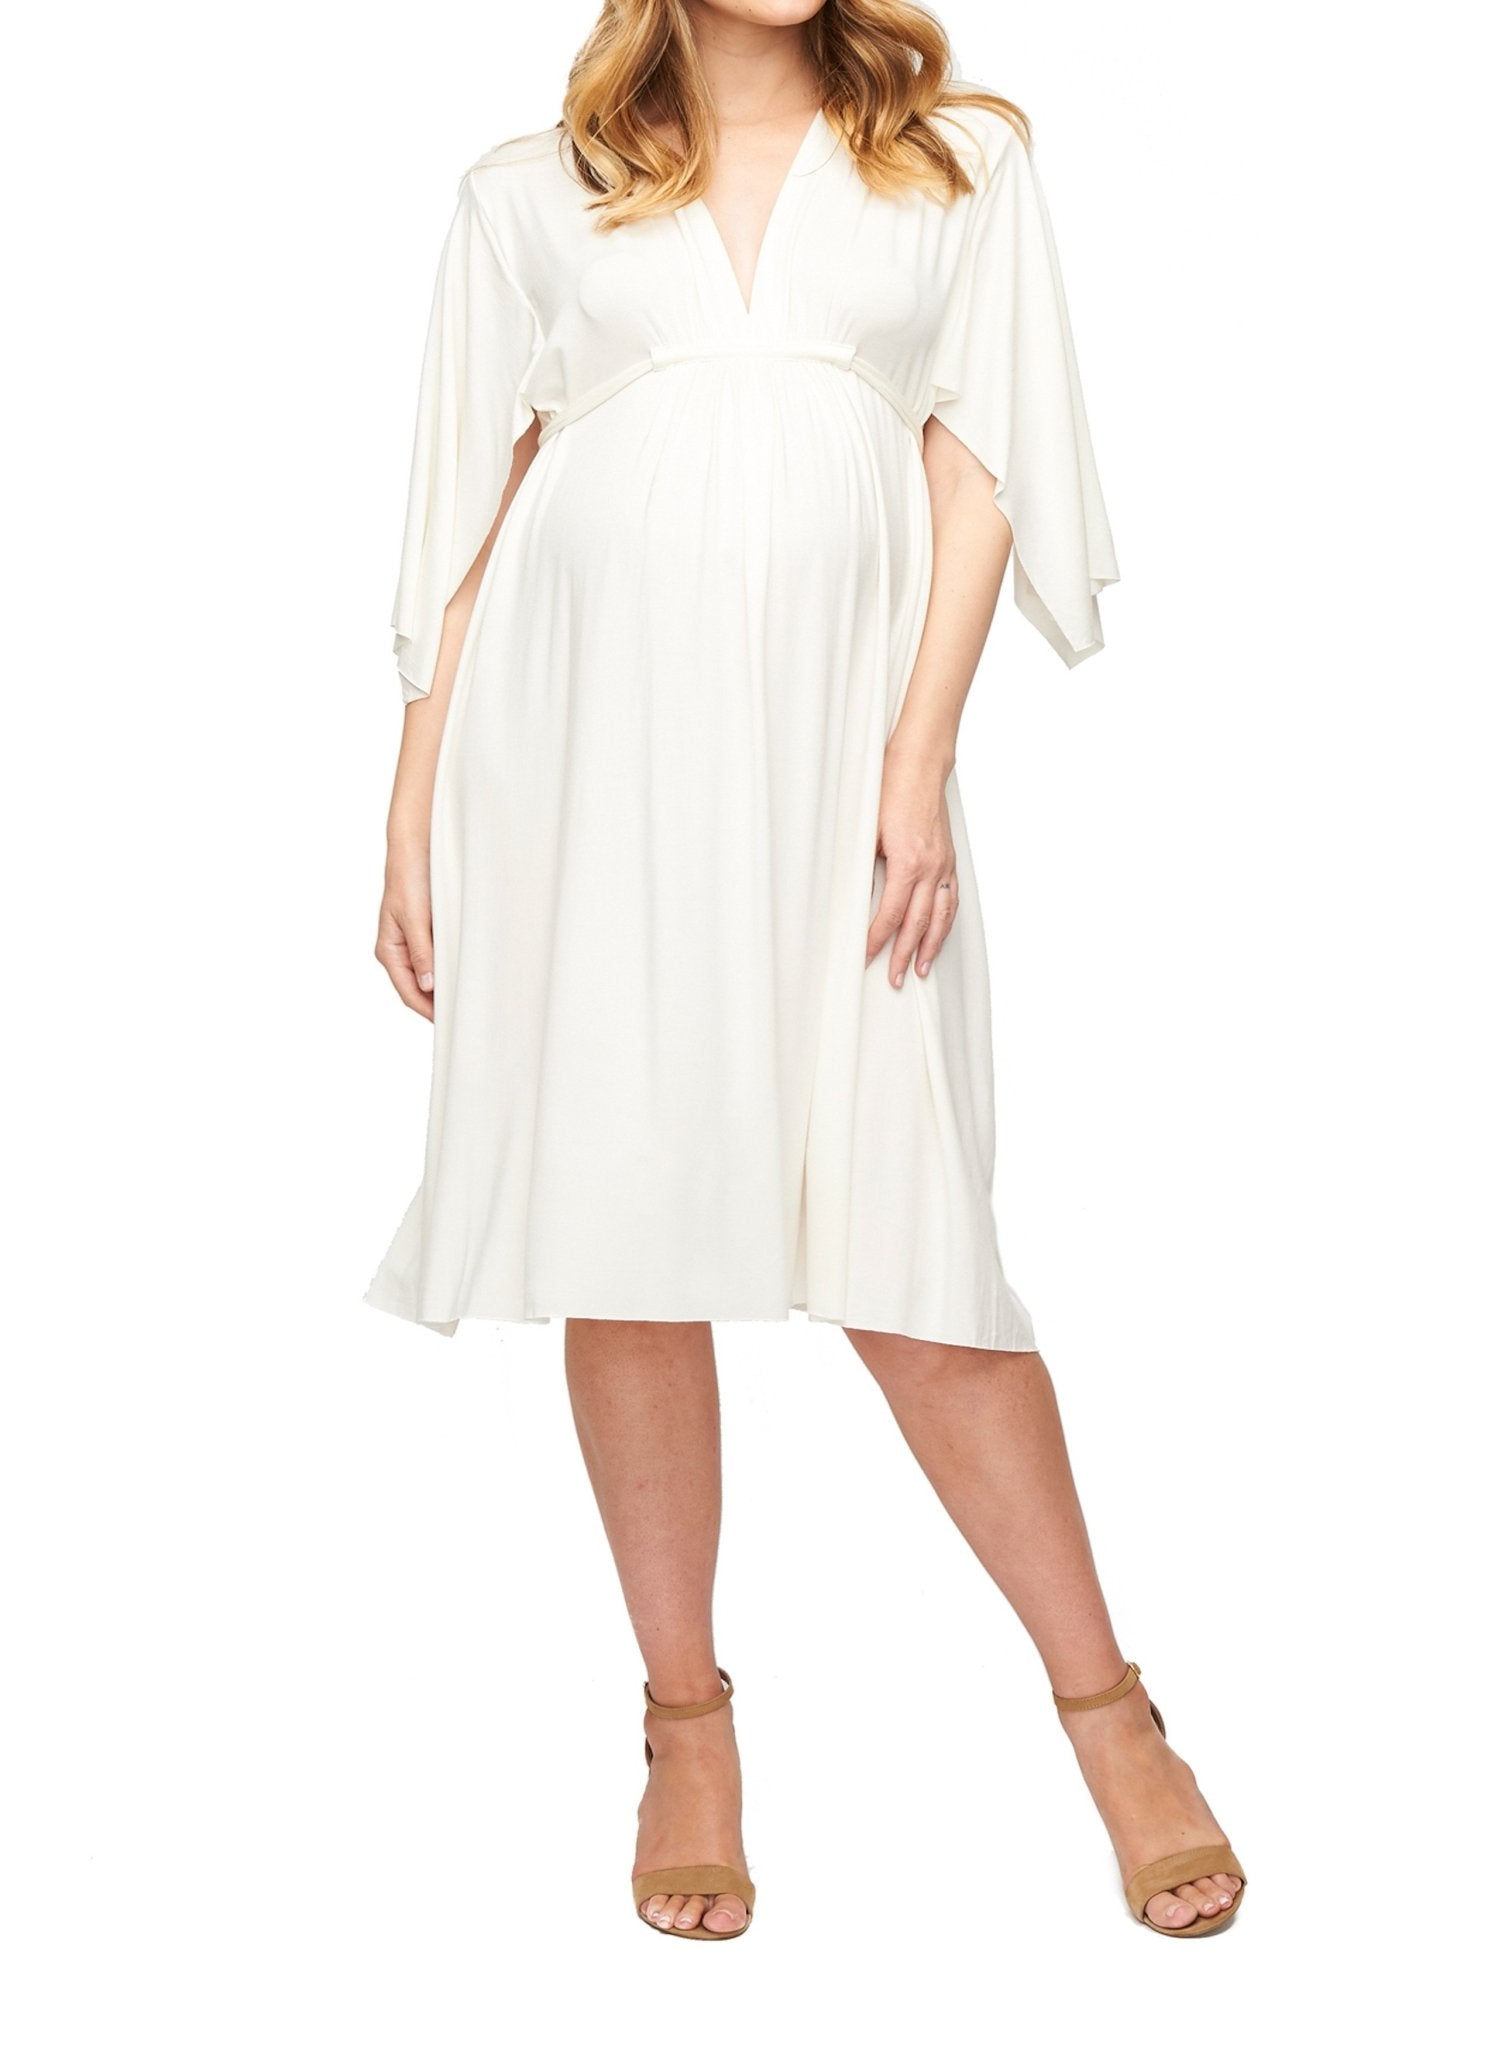 Short Caftan Maternity Dress - White - Mums and Bumps